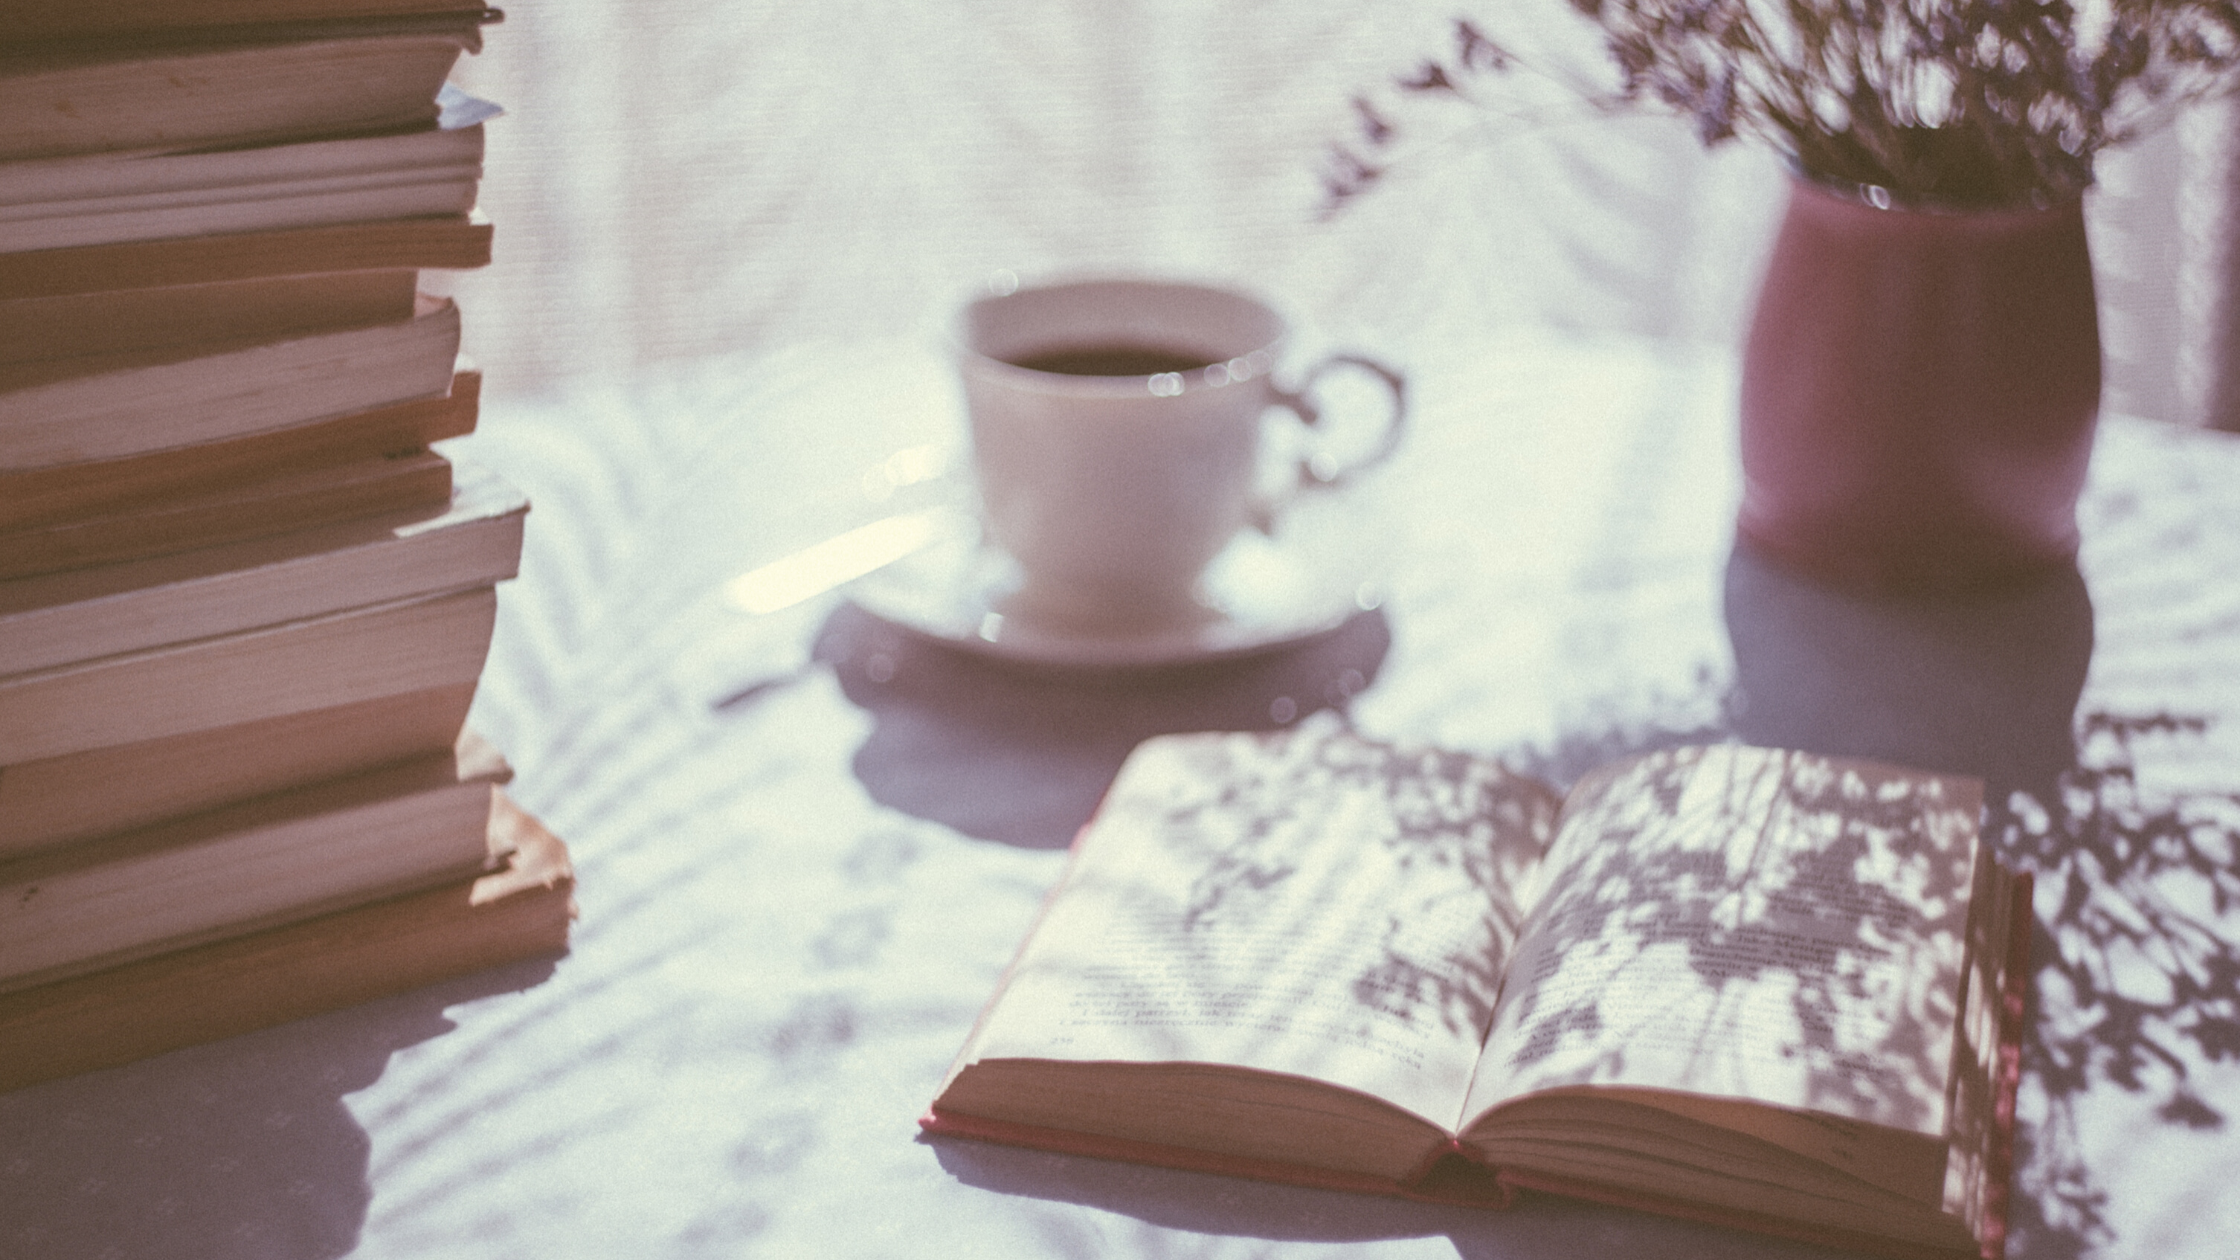 Filtered sunlight cast over a table with an open book, a stack of books, a plant, and a cup and saucer holding dark liquid